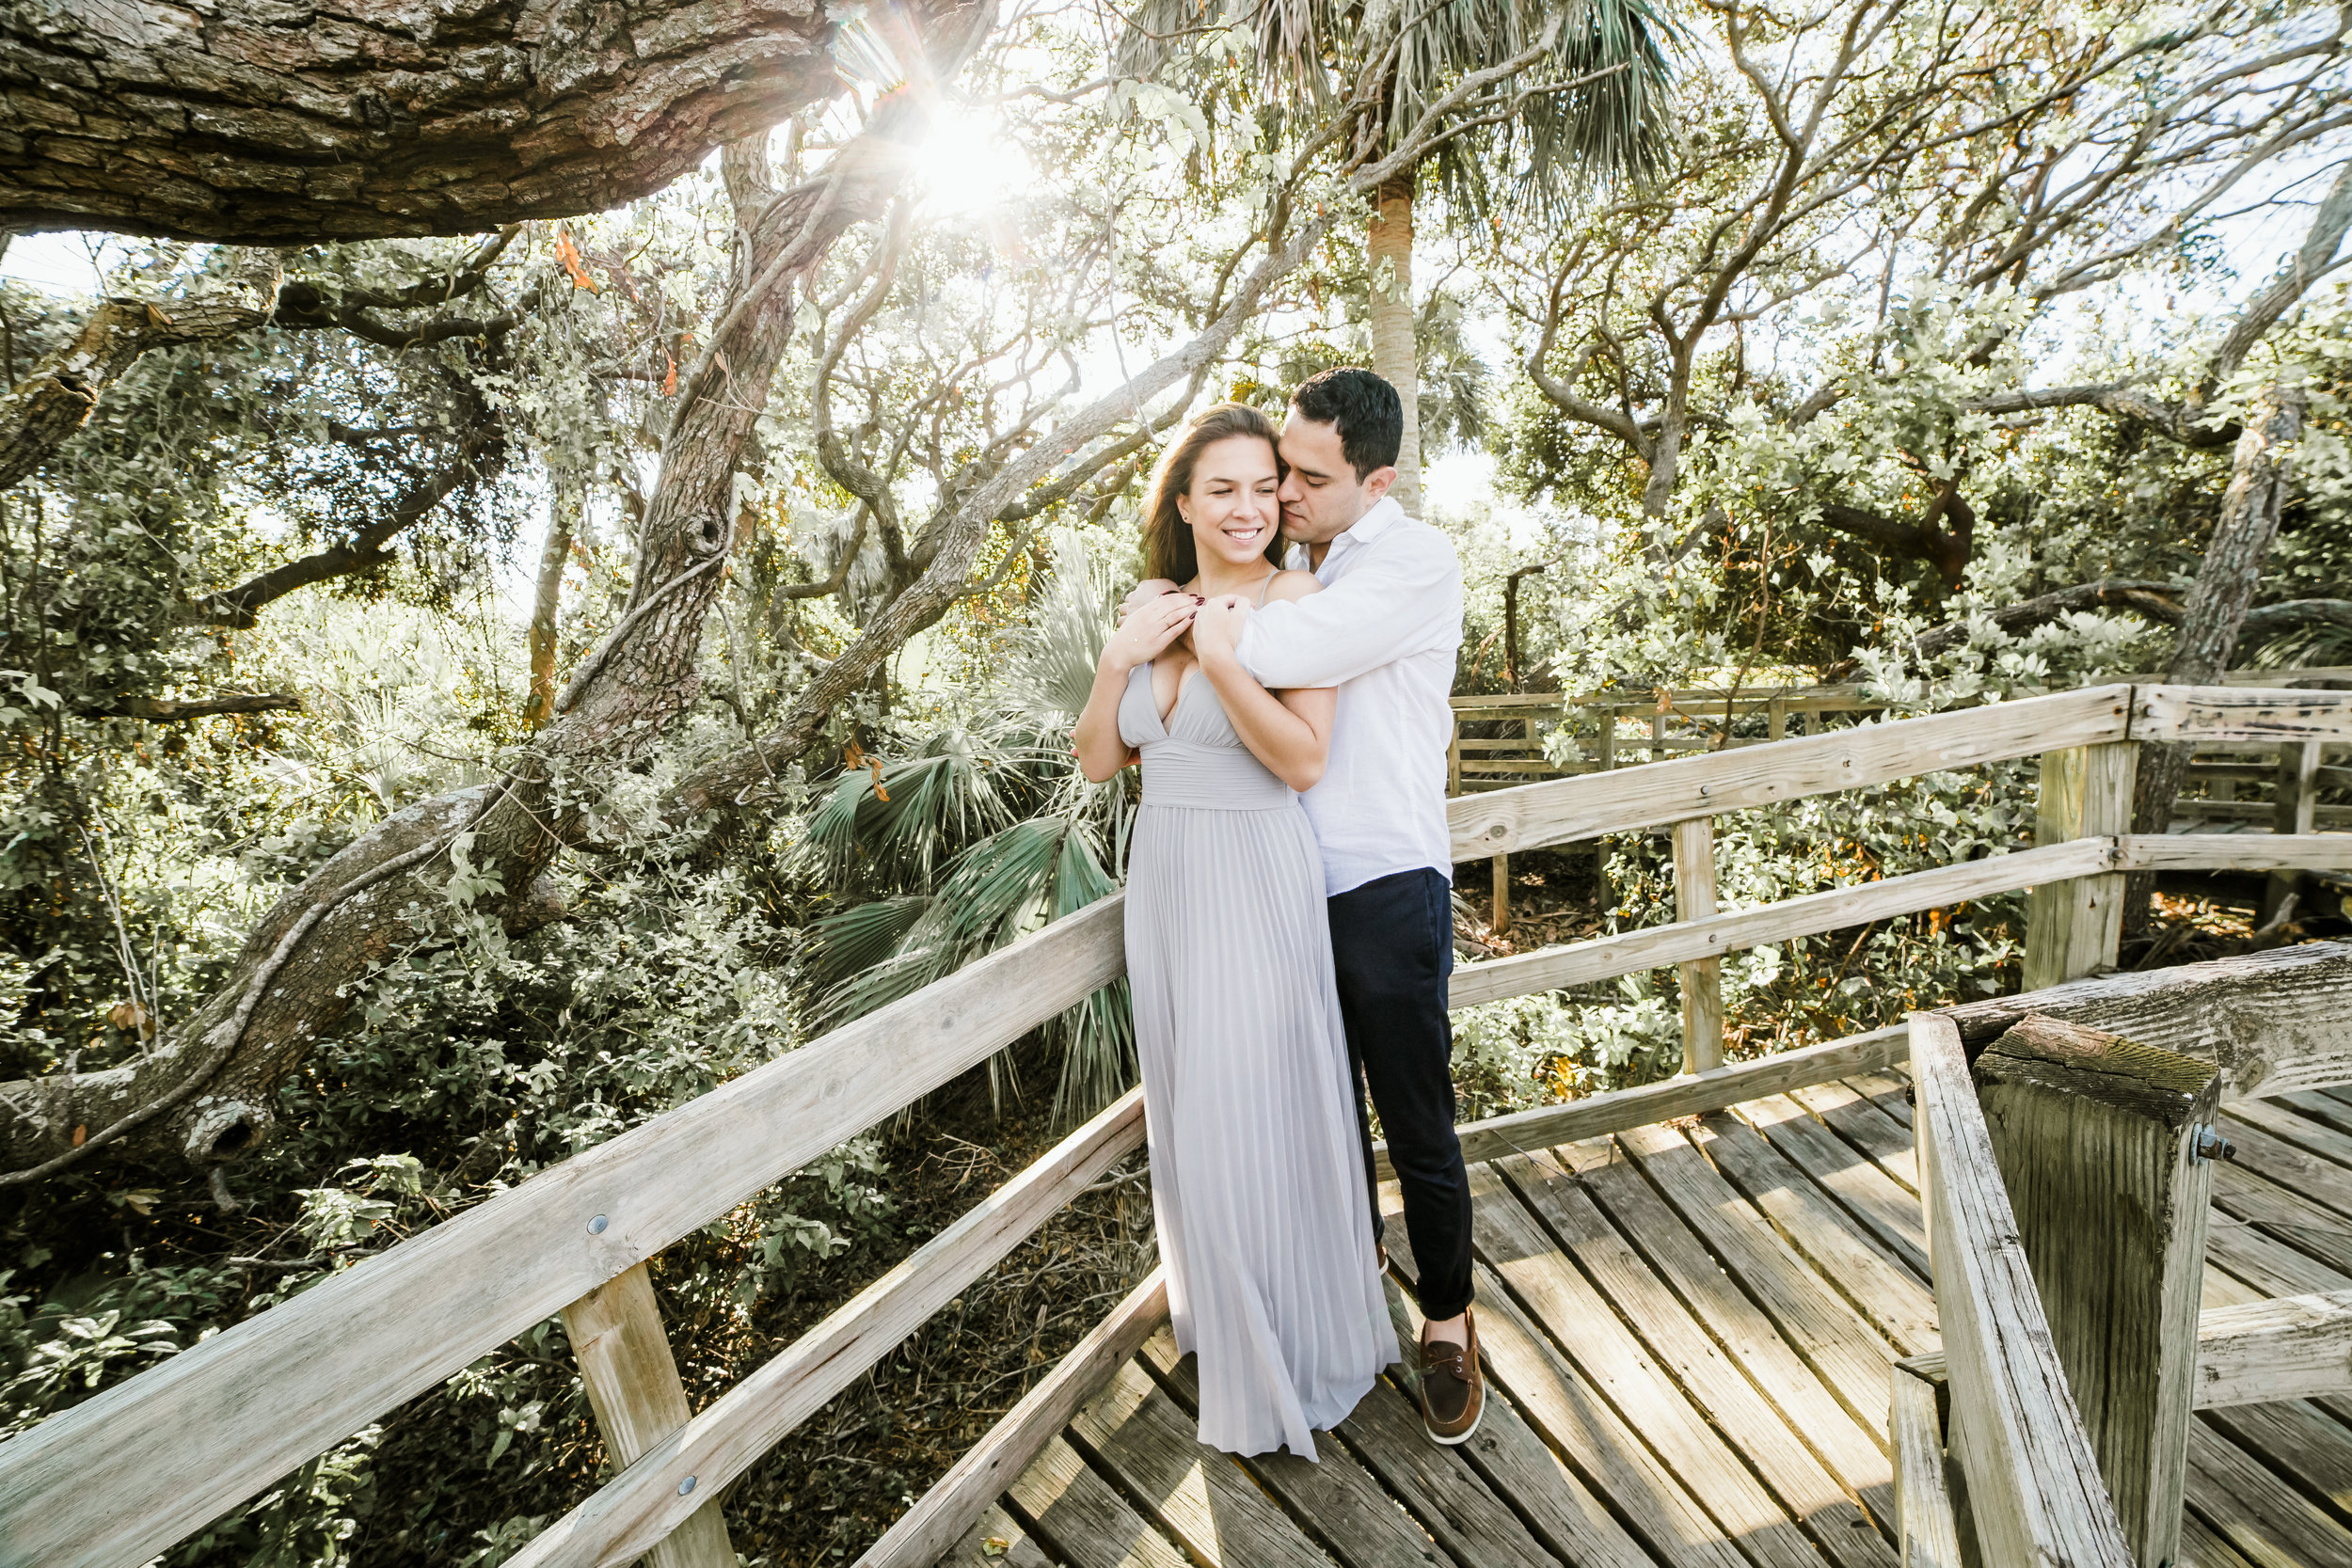 Elya + Andres - Cocoa Beach Engagement - boho bride organic eucalpytus crown mermaid forest11.jpg